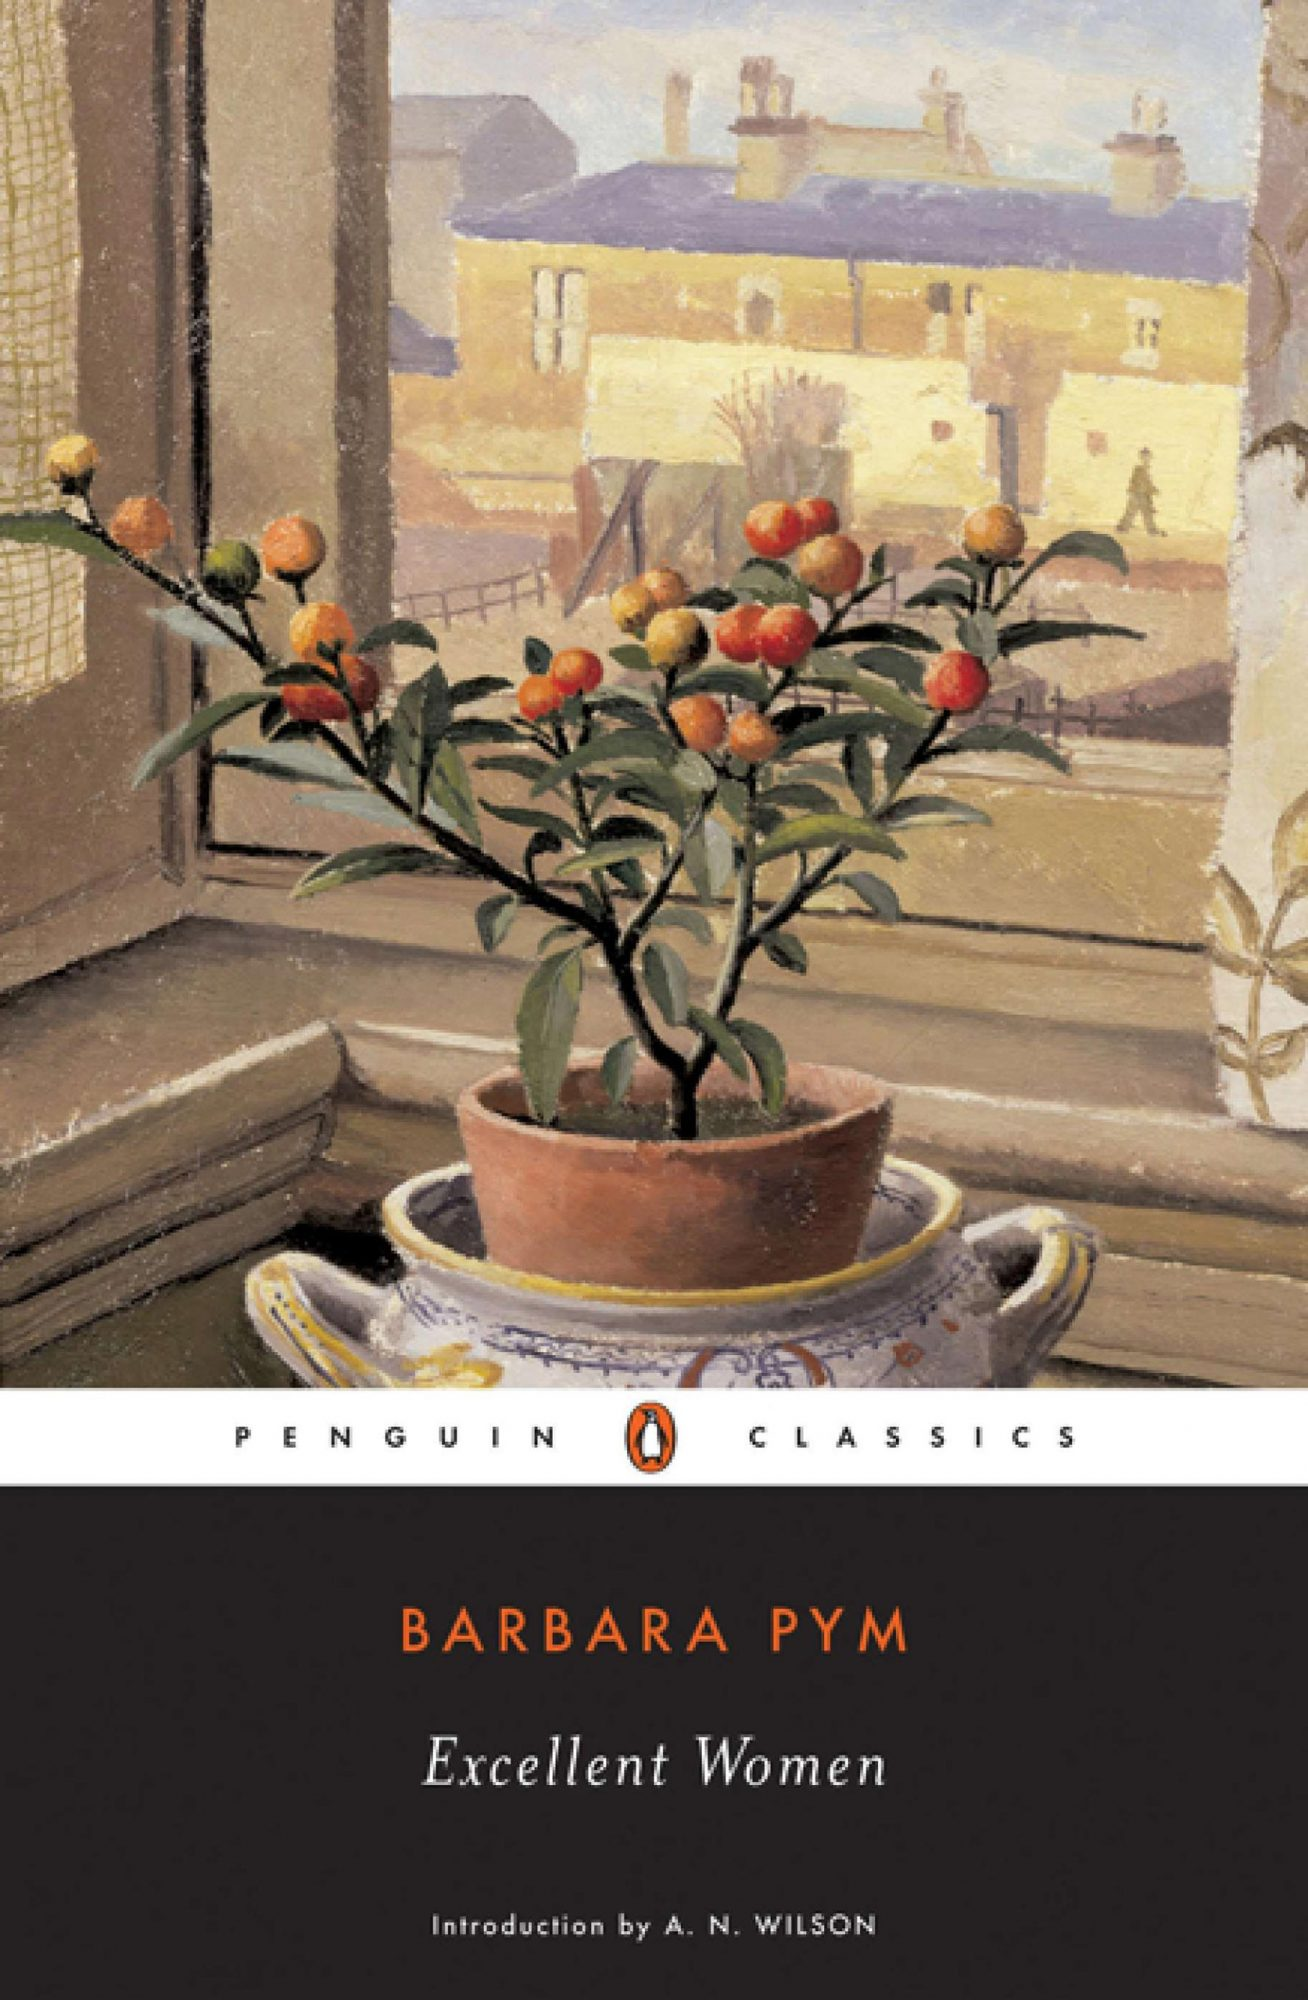 Excellent Women, by Barbara Pym